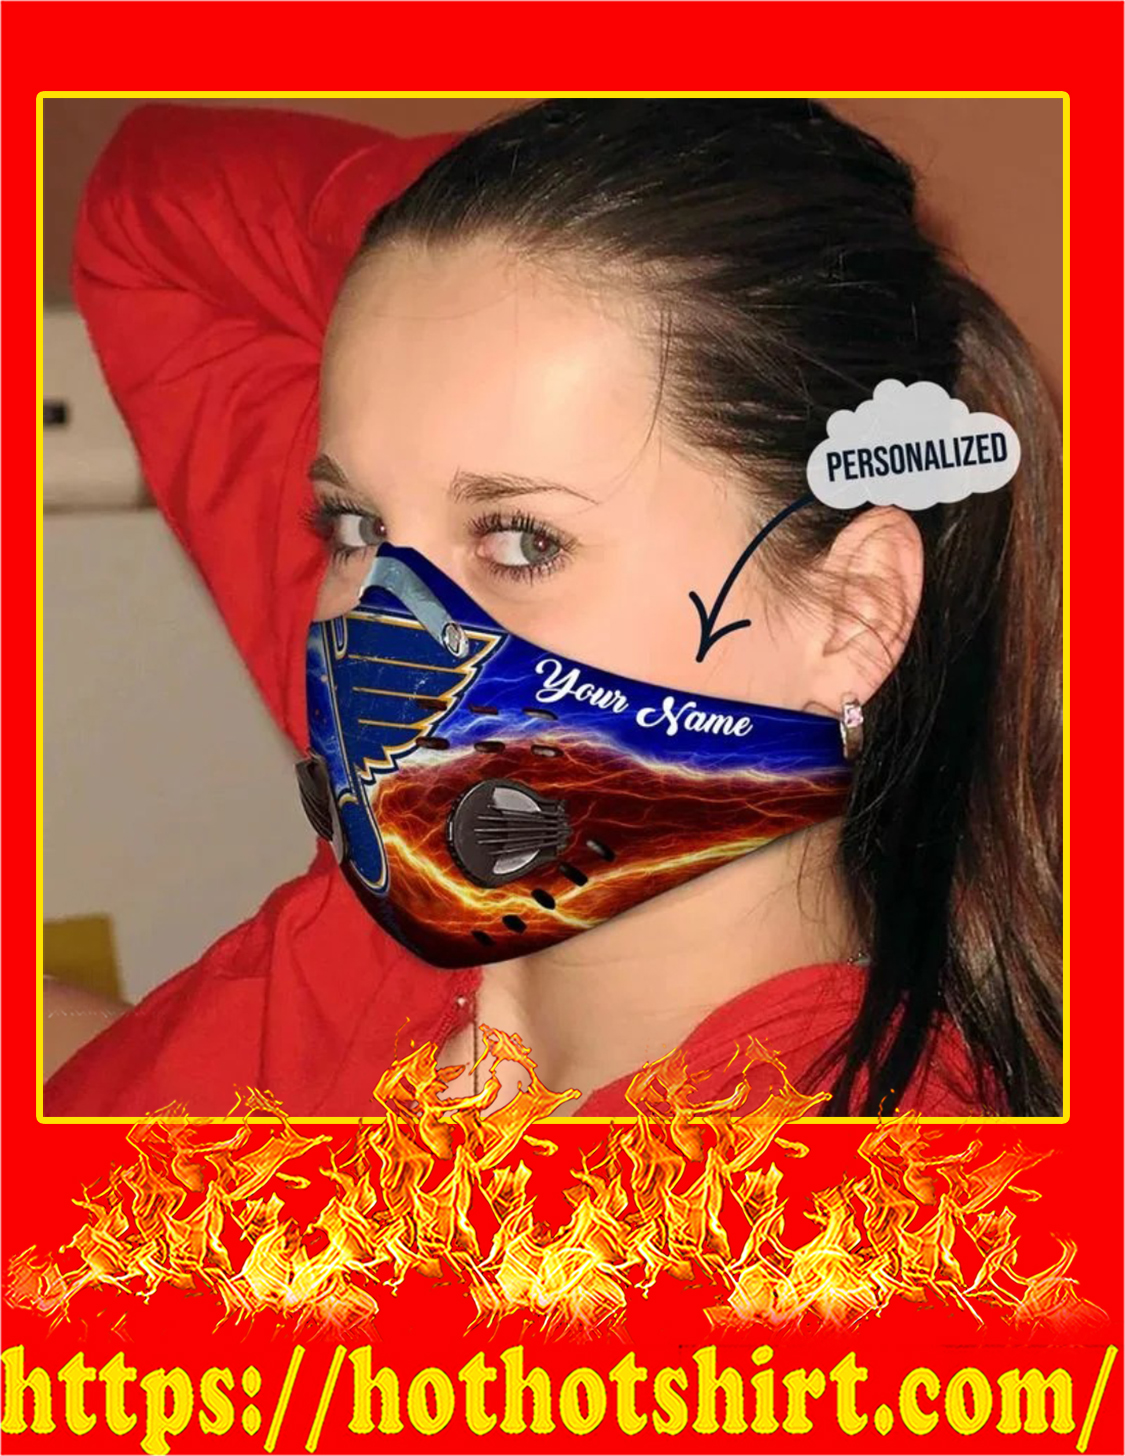 St louis blues personalized custom name filter face mask - Pic 2